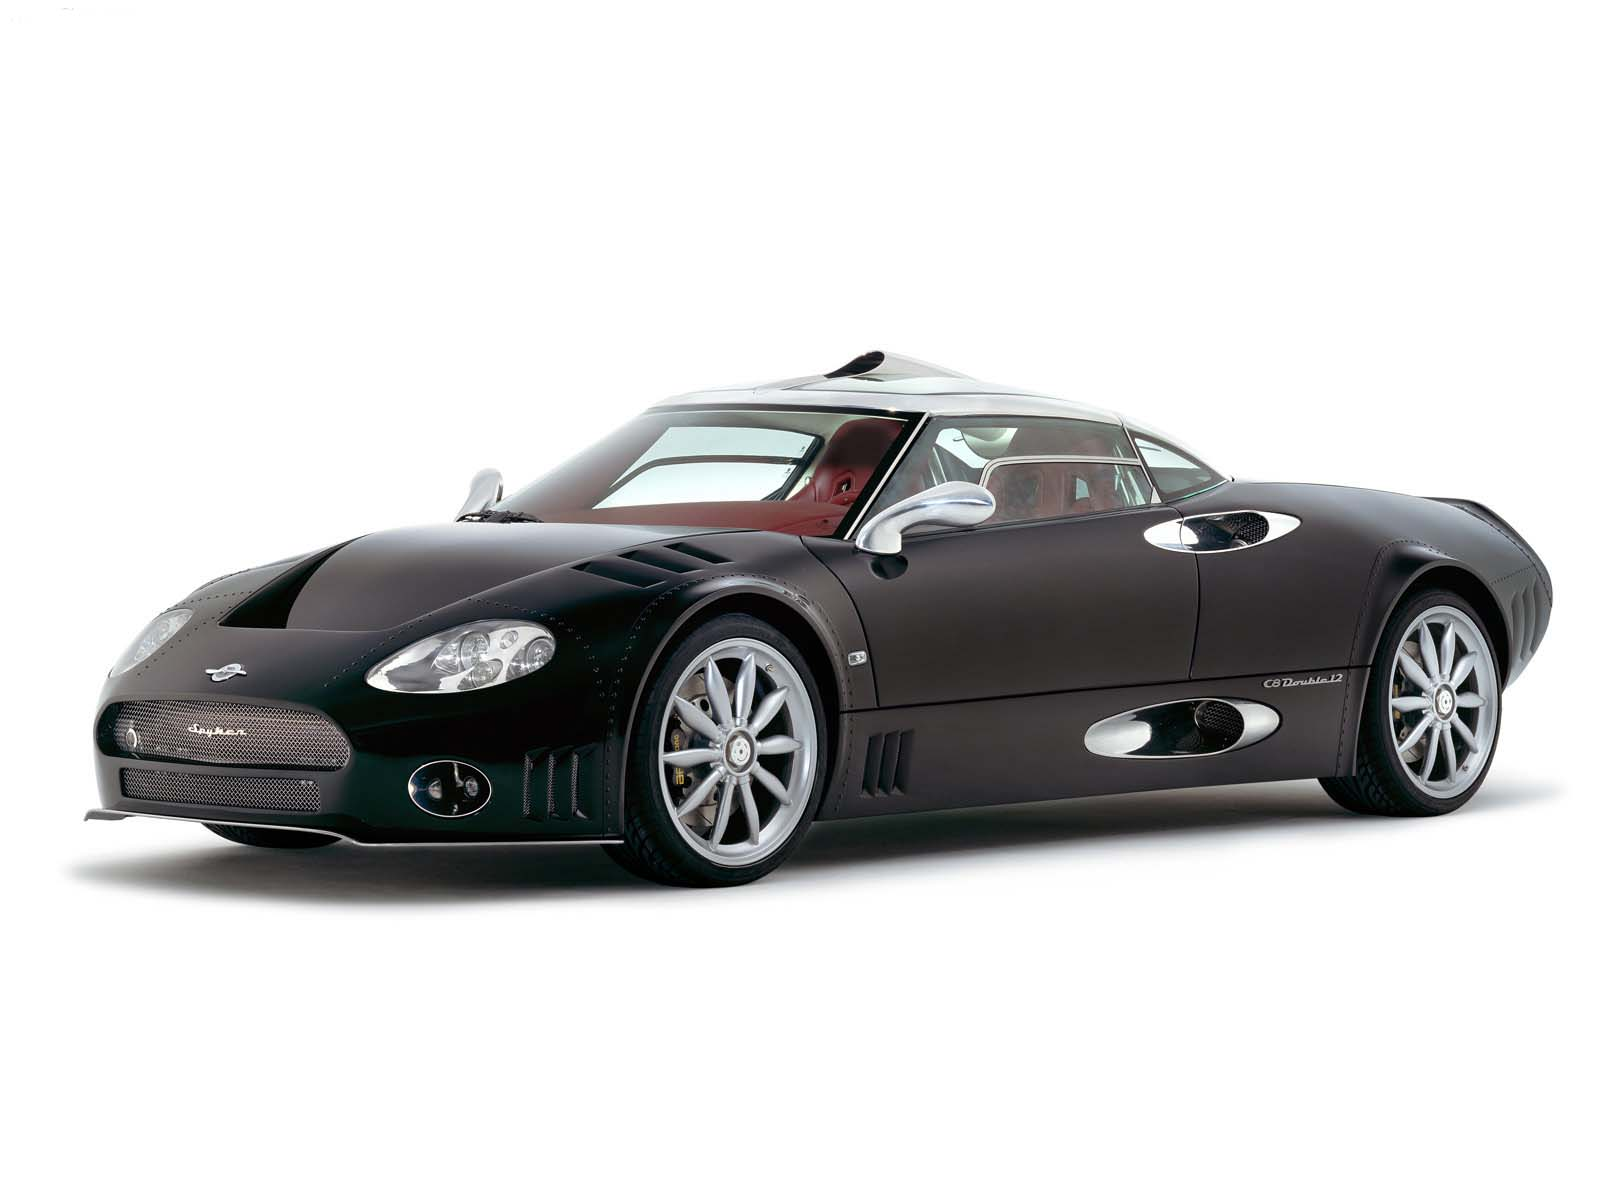 Sport Cars Spyker C8 Double 12 2005